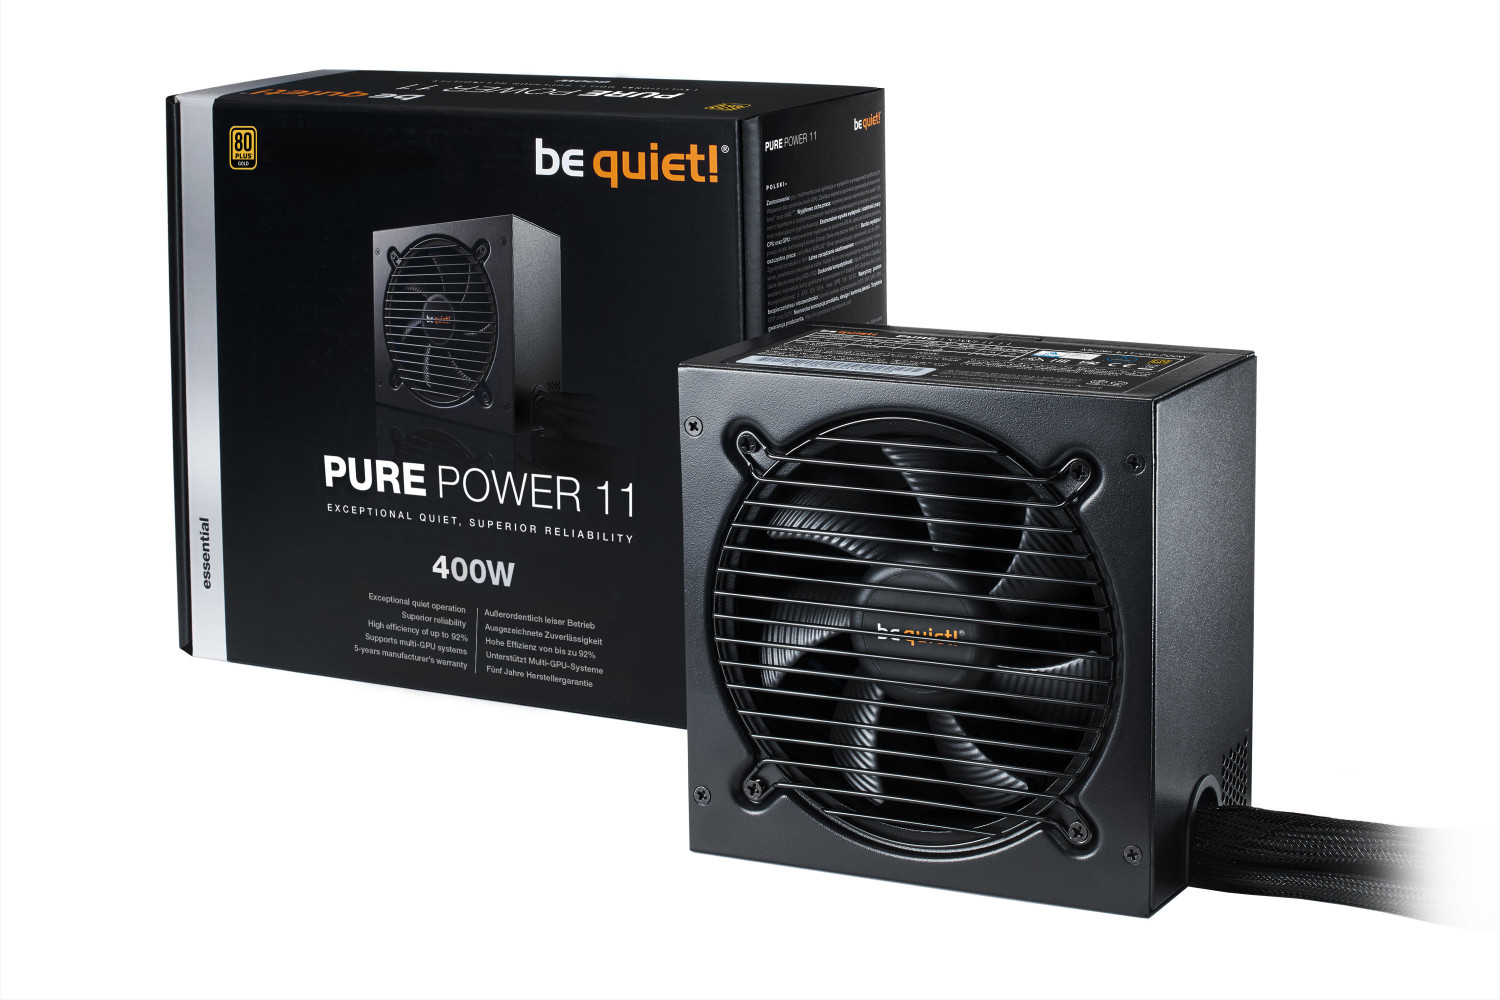 Image of be quiet! Pure Power 11 400W